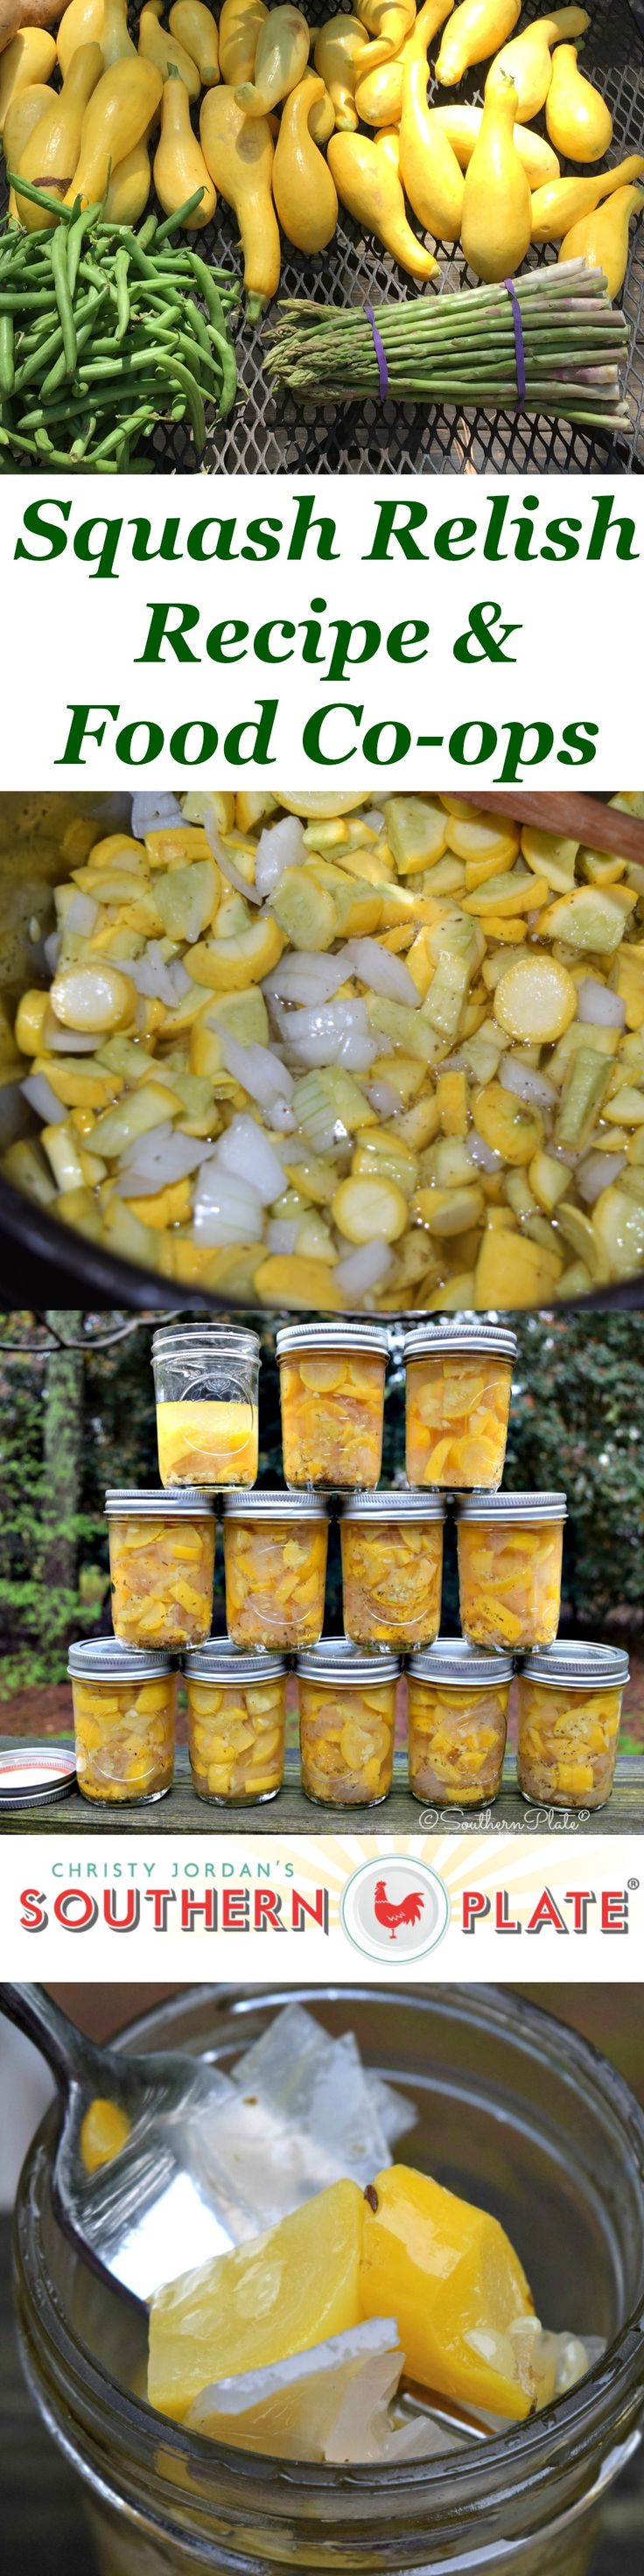 How to make Squash Relish and How To Join a Food Co-op Near You! ~ http://www.southernplate.com